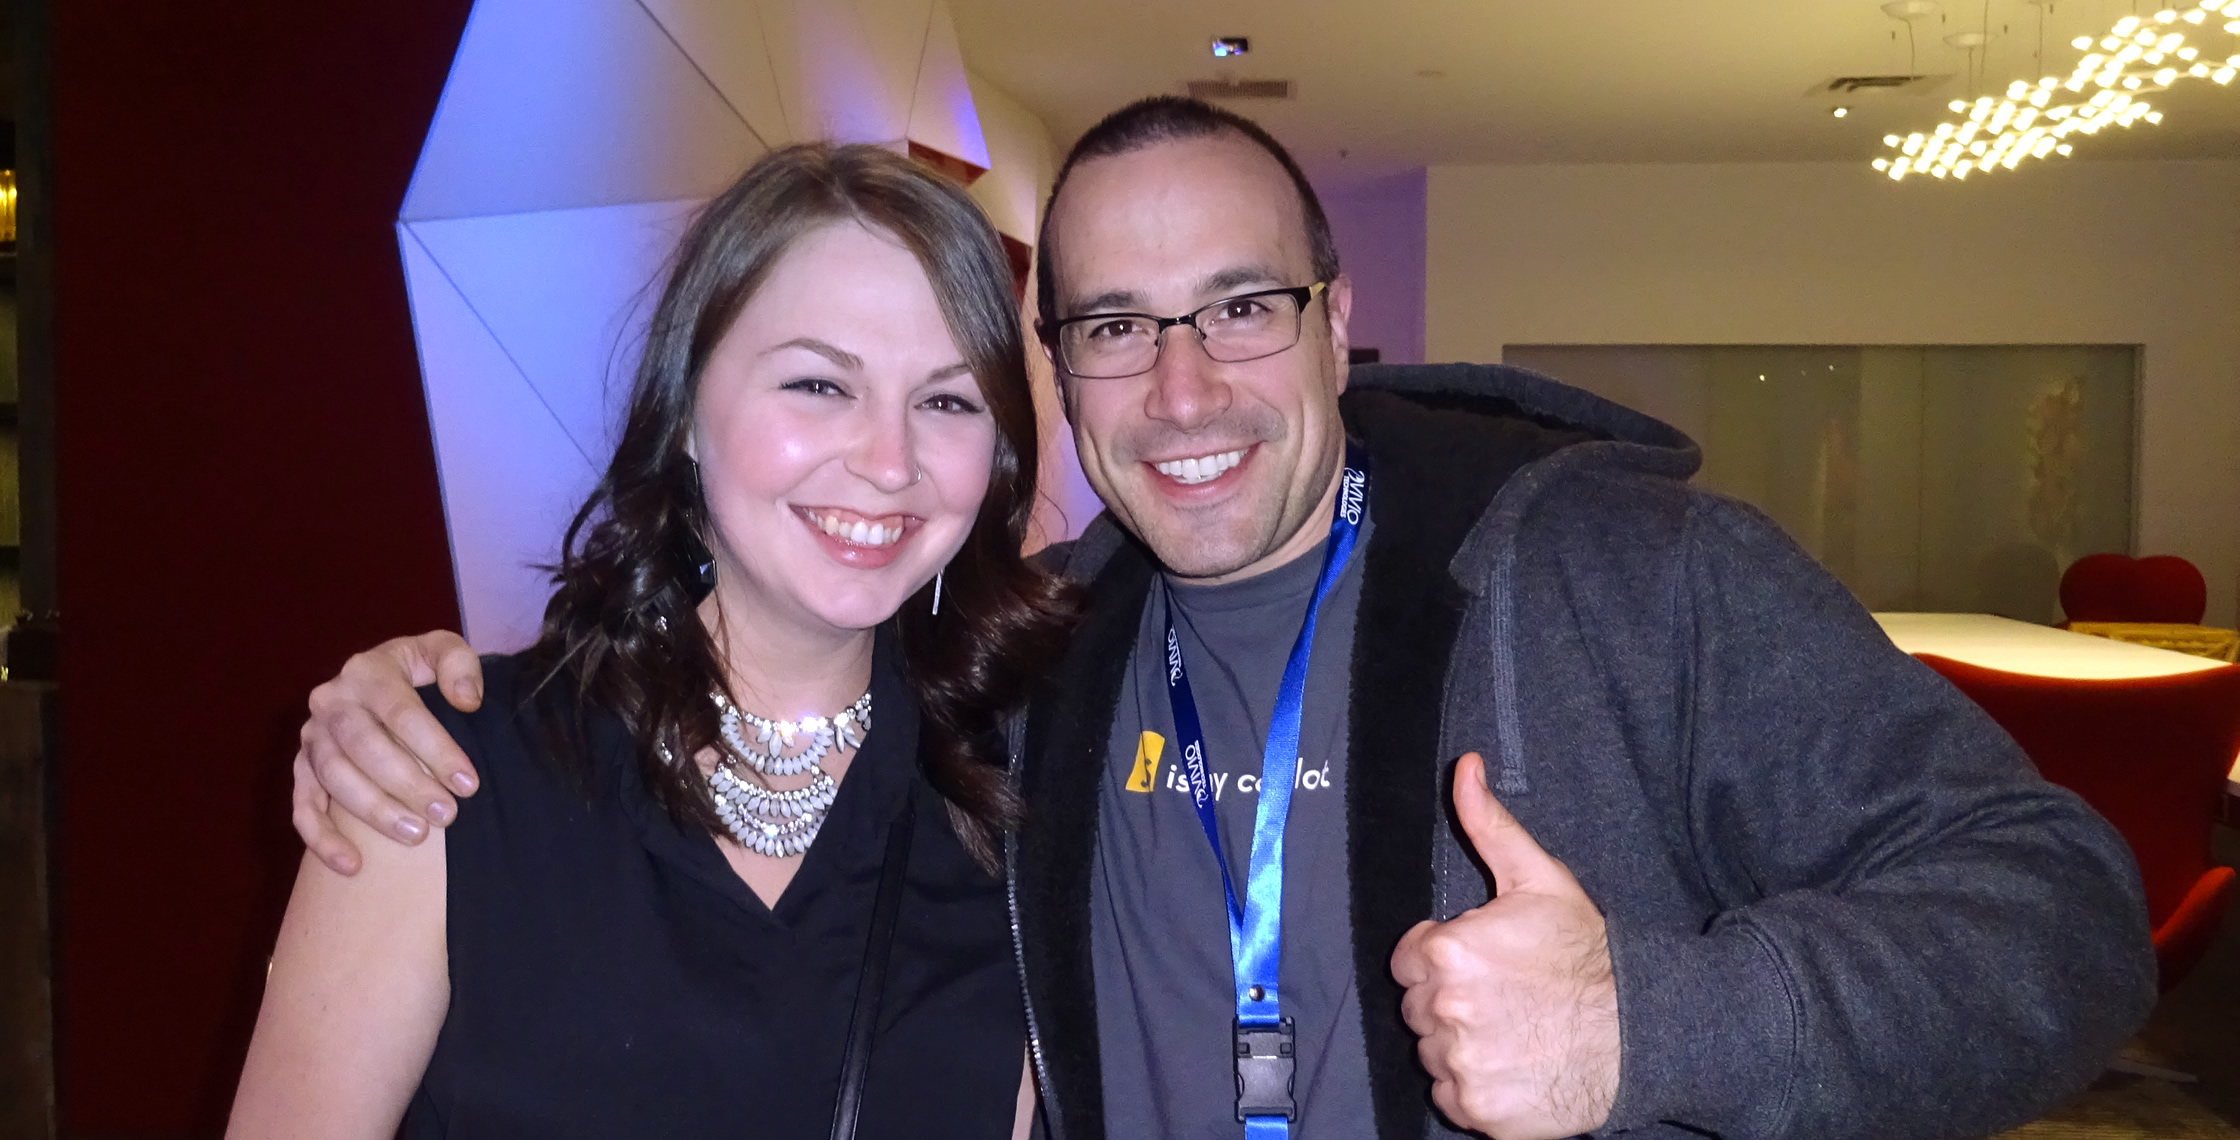 Ben Nadel at dev.Objective() 2015 (Bloomington, MN) with: Justine Arreche